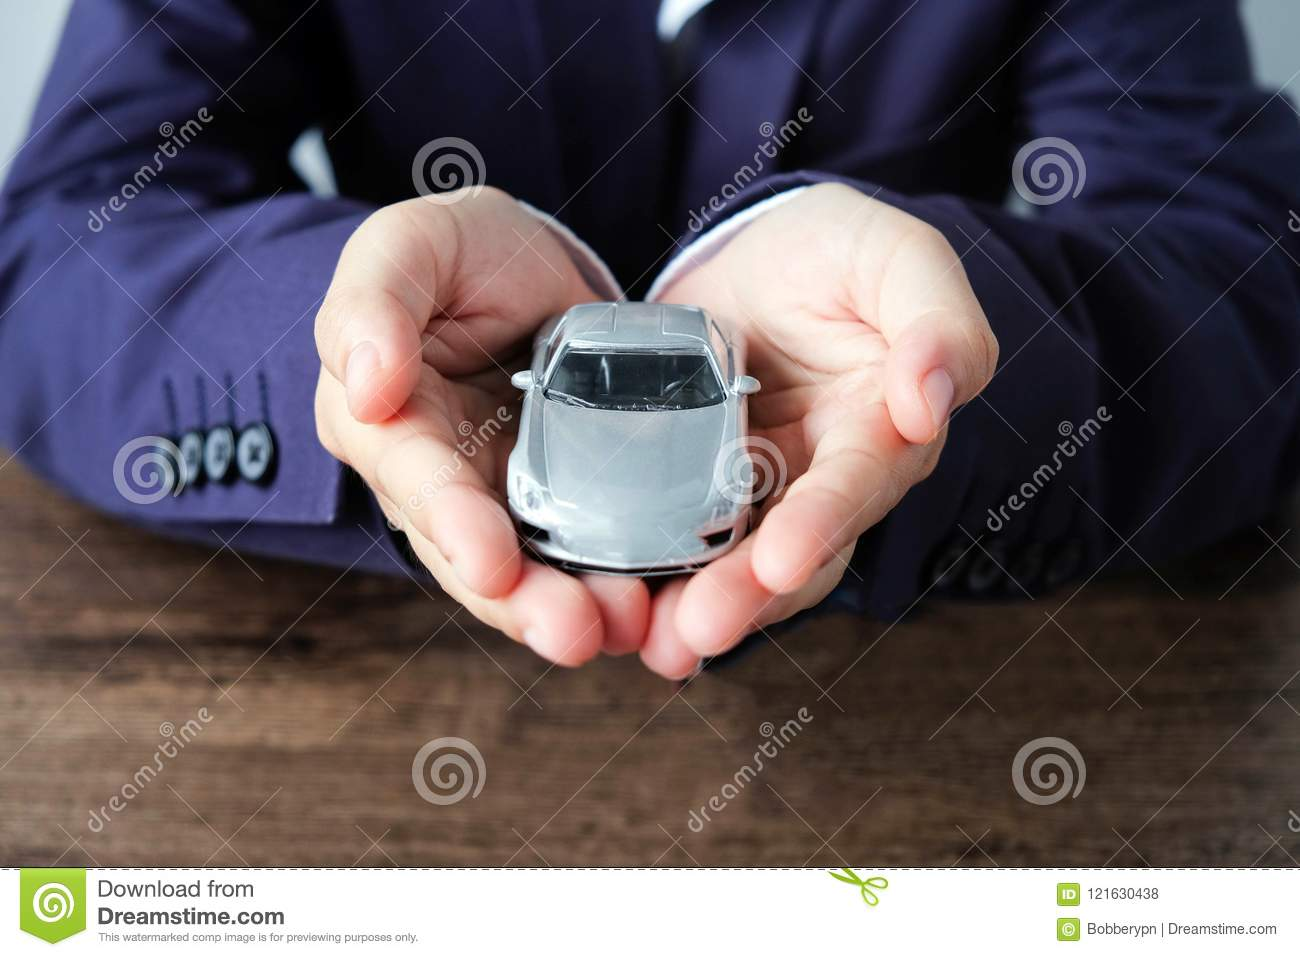 Miniature car model on hand, Auto dealership and rental concept